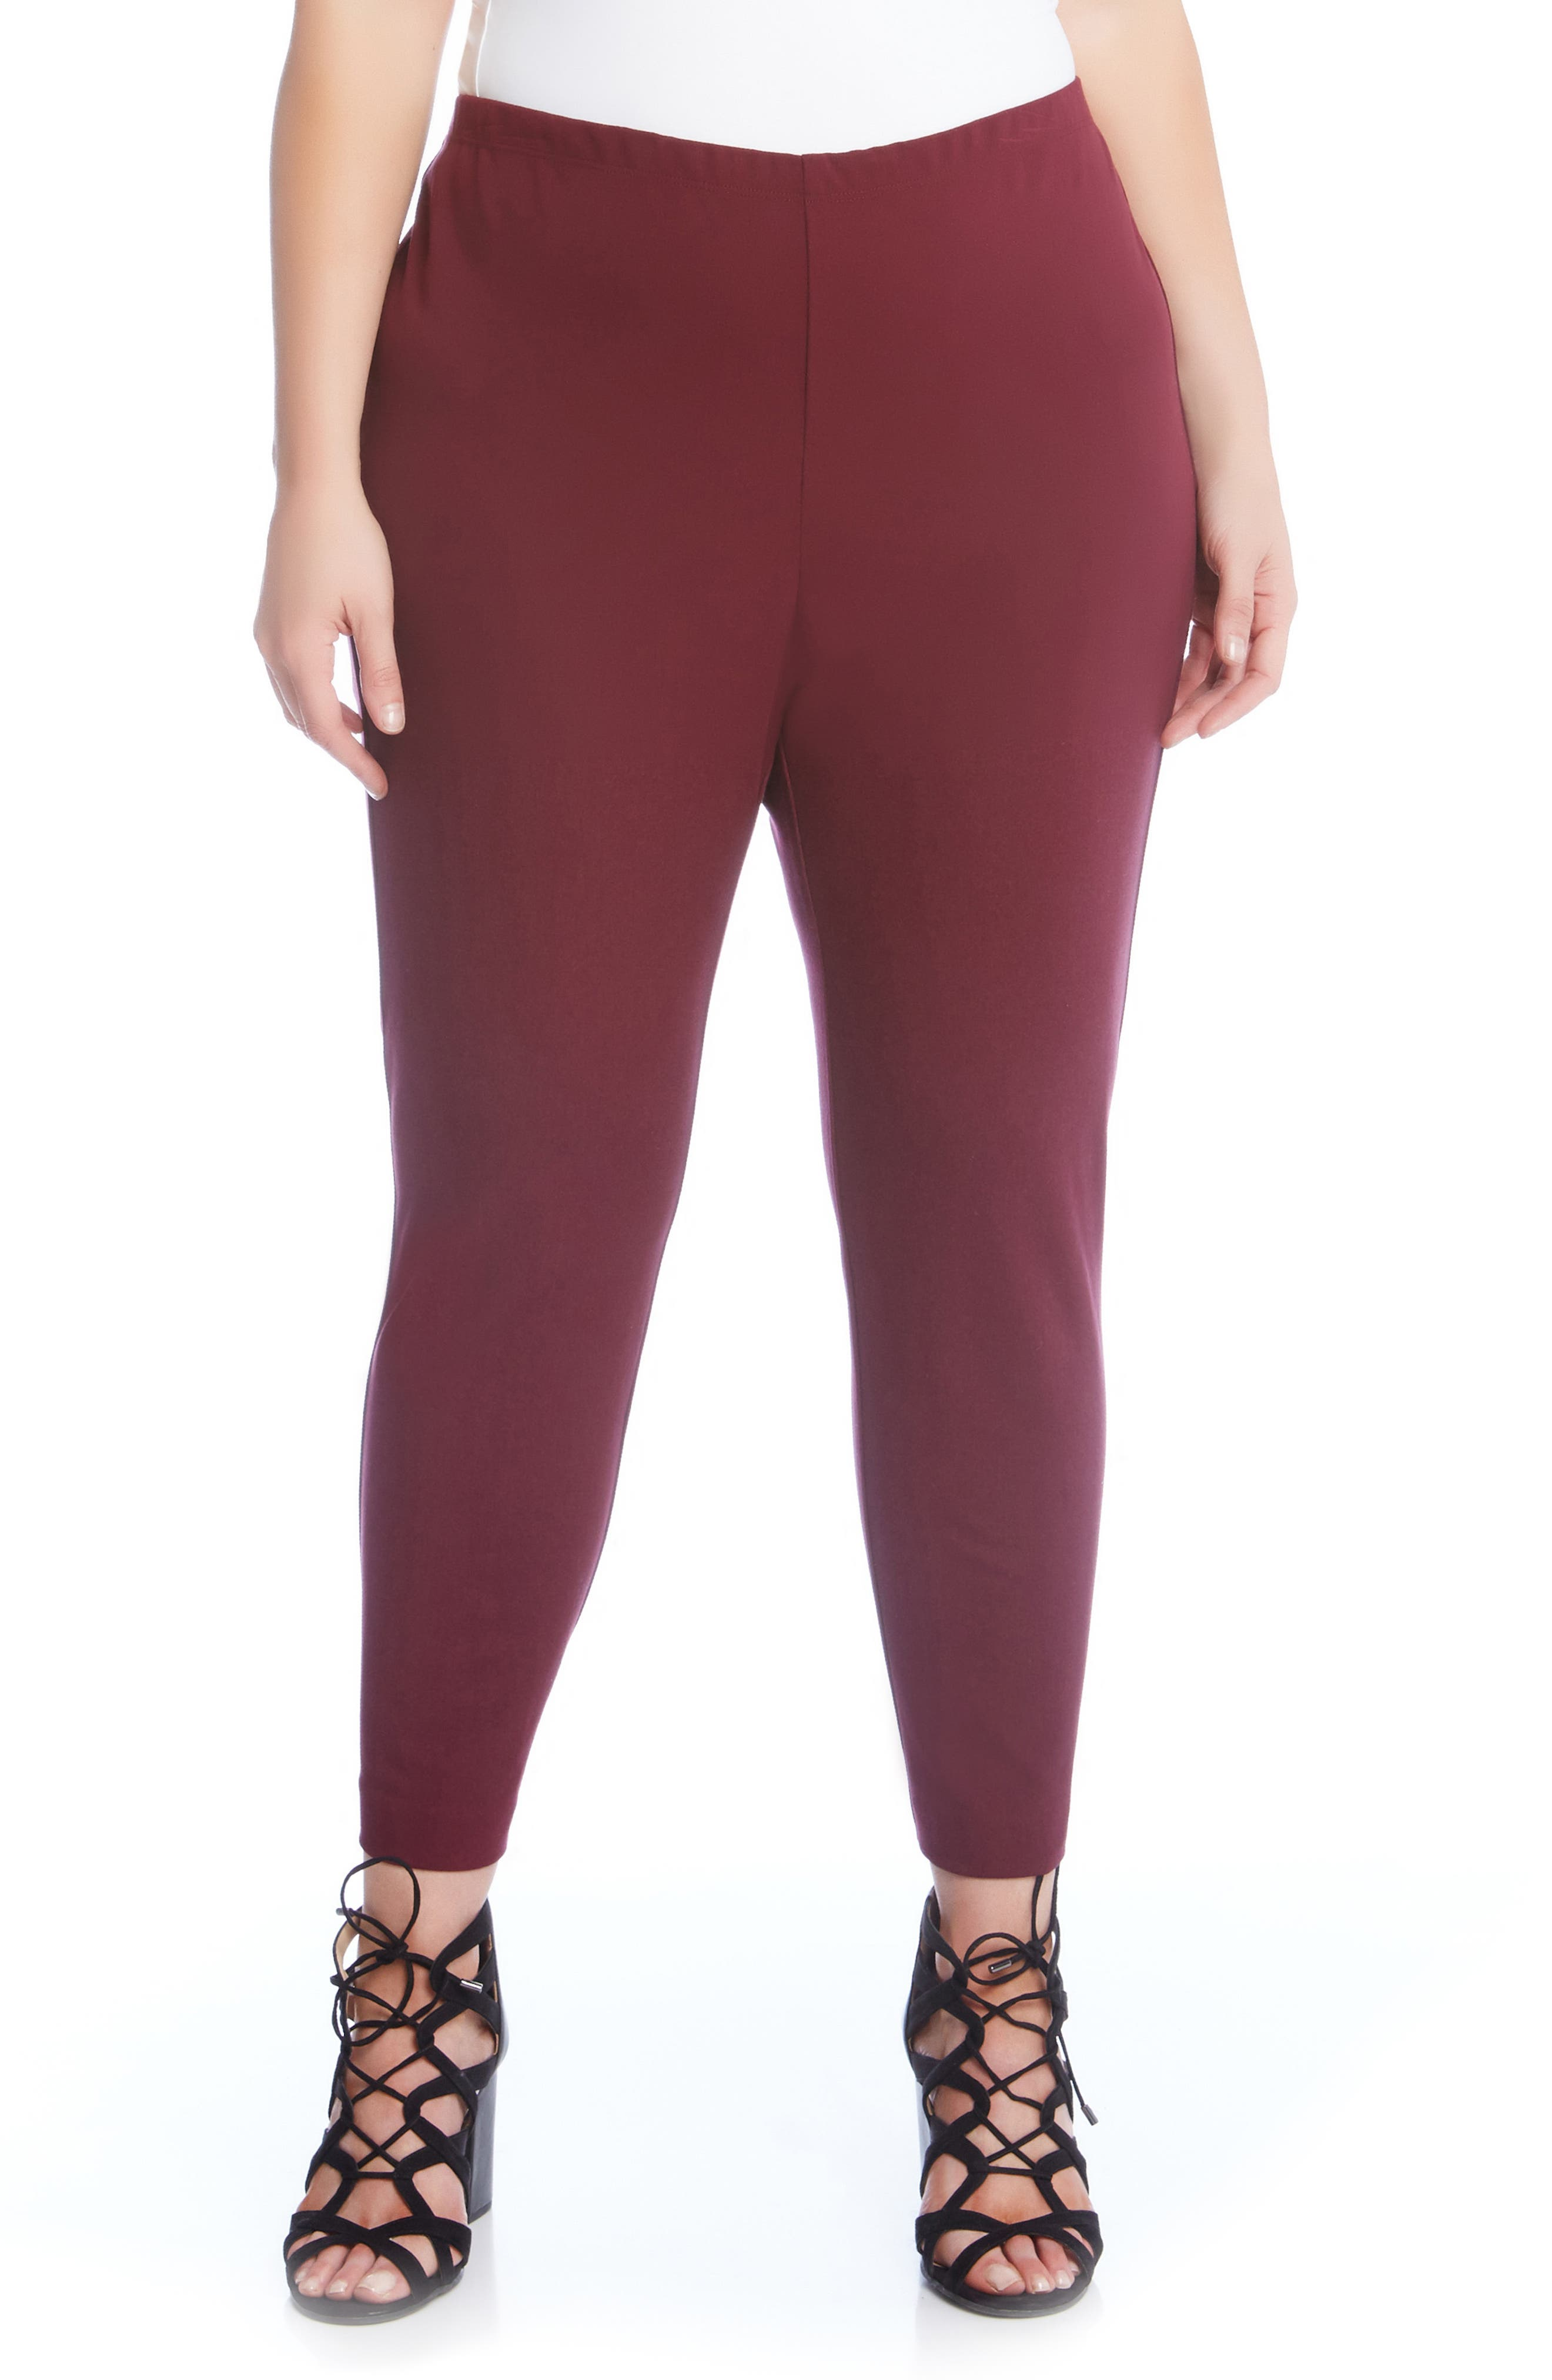 Piper High-Waist Pants,                         Main,                         color, Burgundy